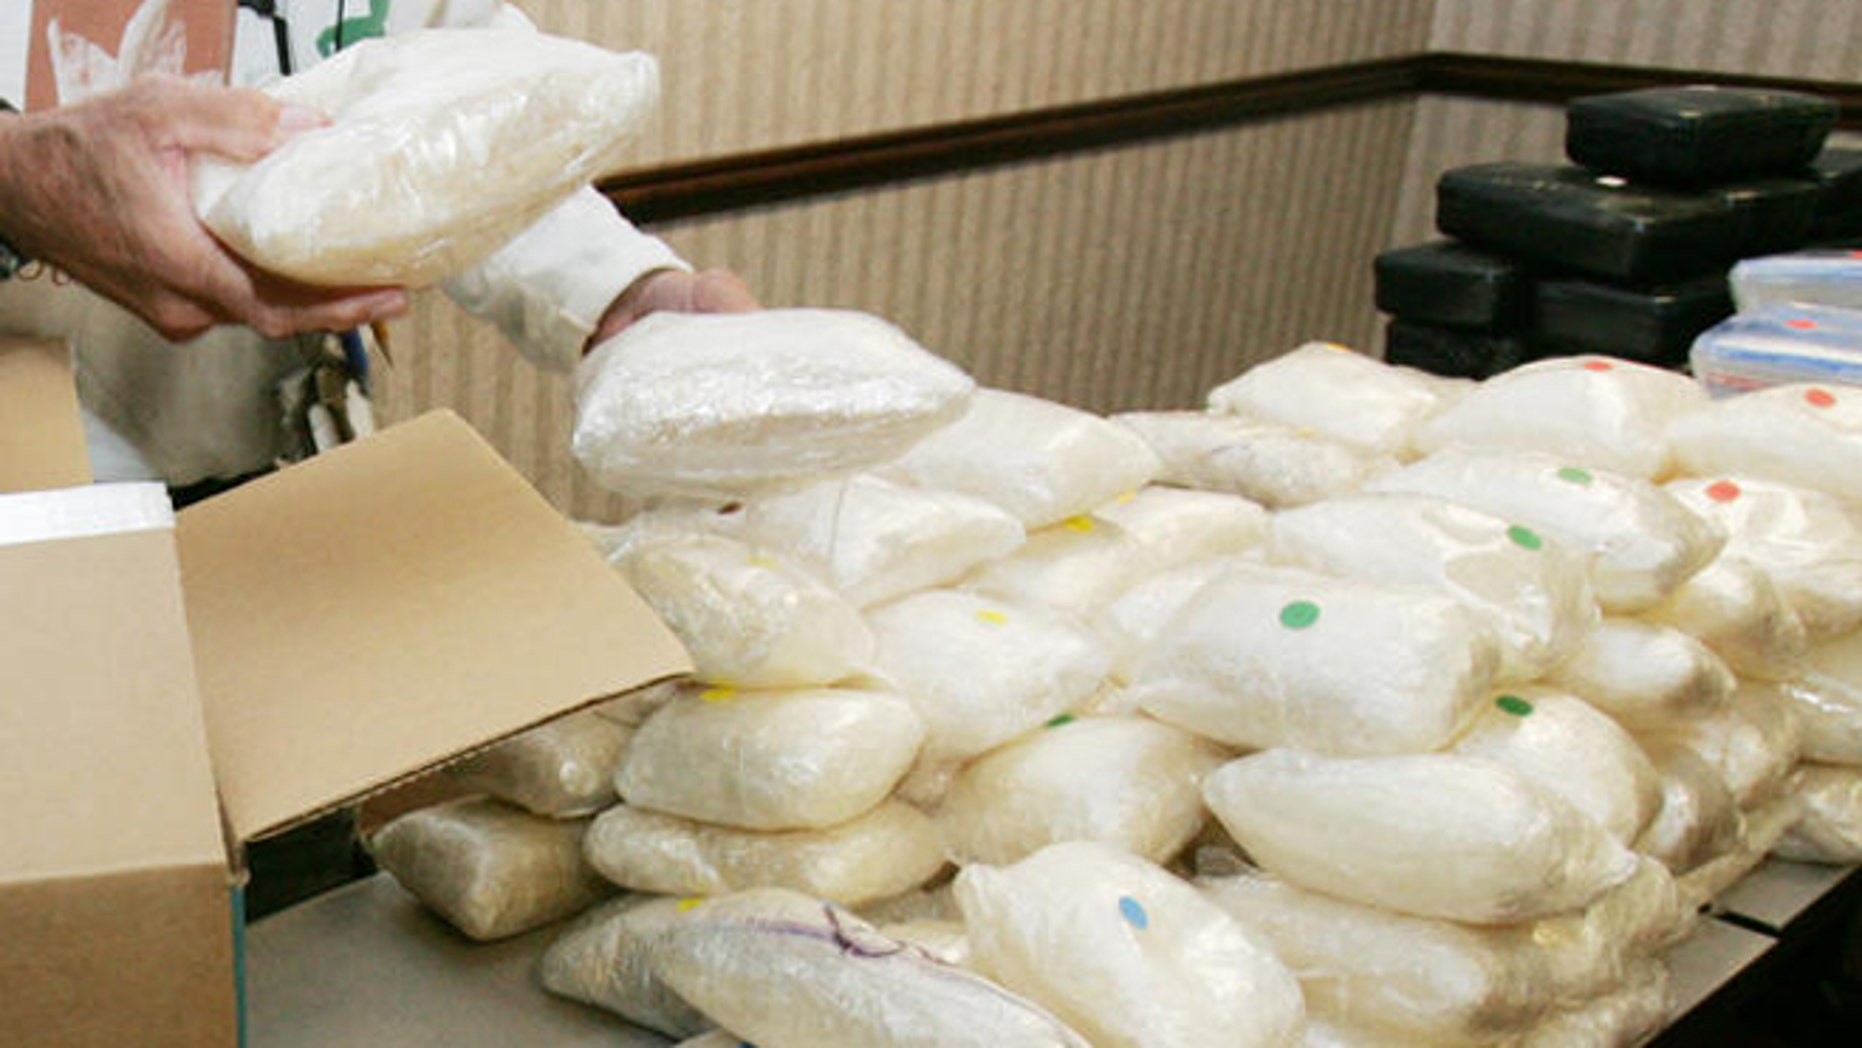 A U.S. Drug Enforcement Administration agent shows some of the 187 plus pounds of methamphetamine.